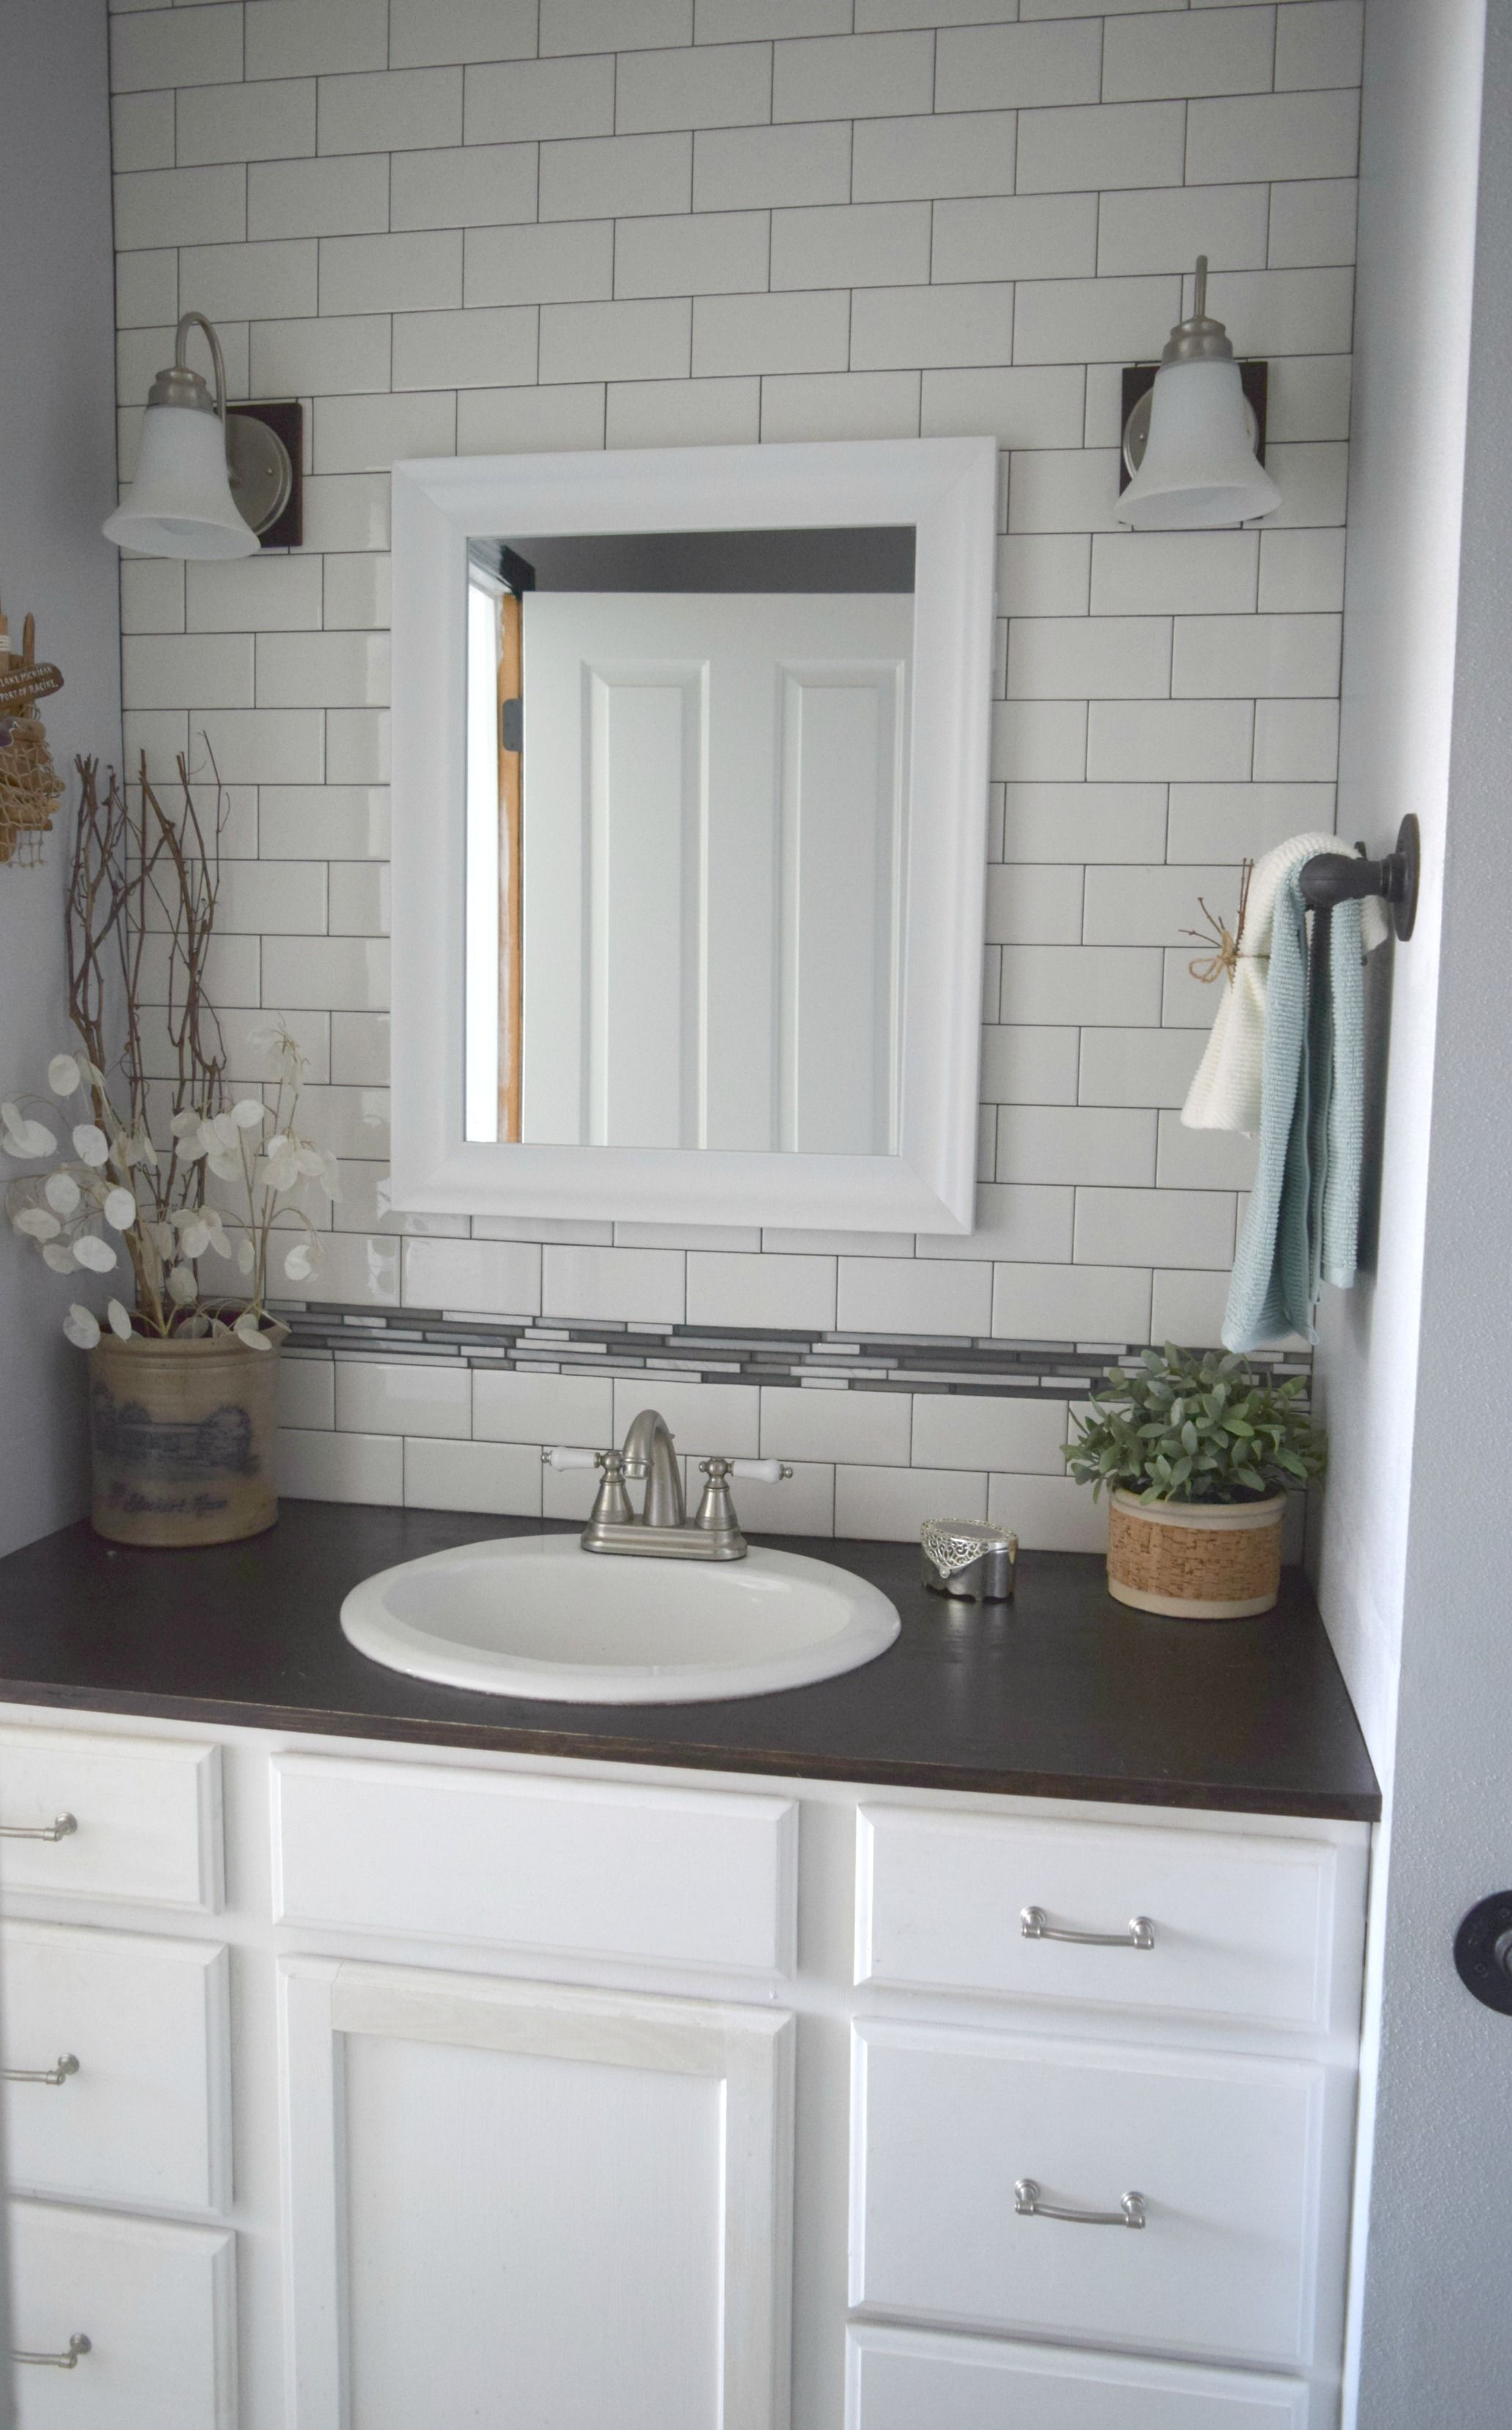 redoing bathroom%0A Bathroom and Kitchen Renovations You Can Afford